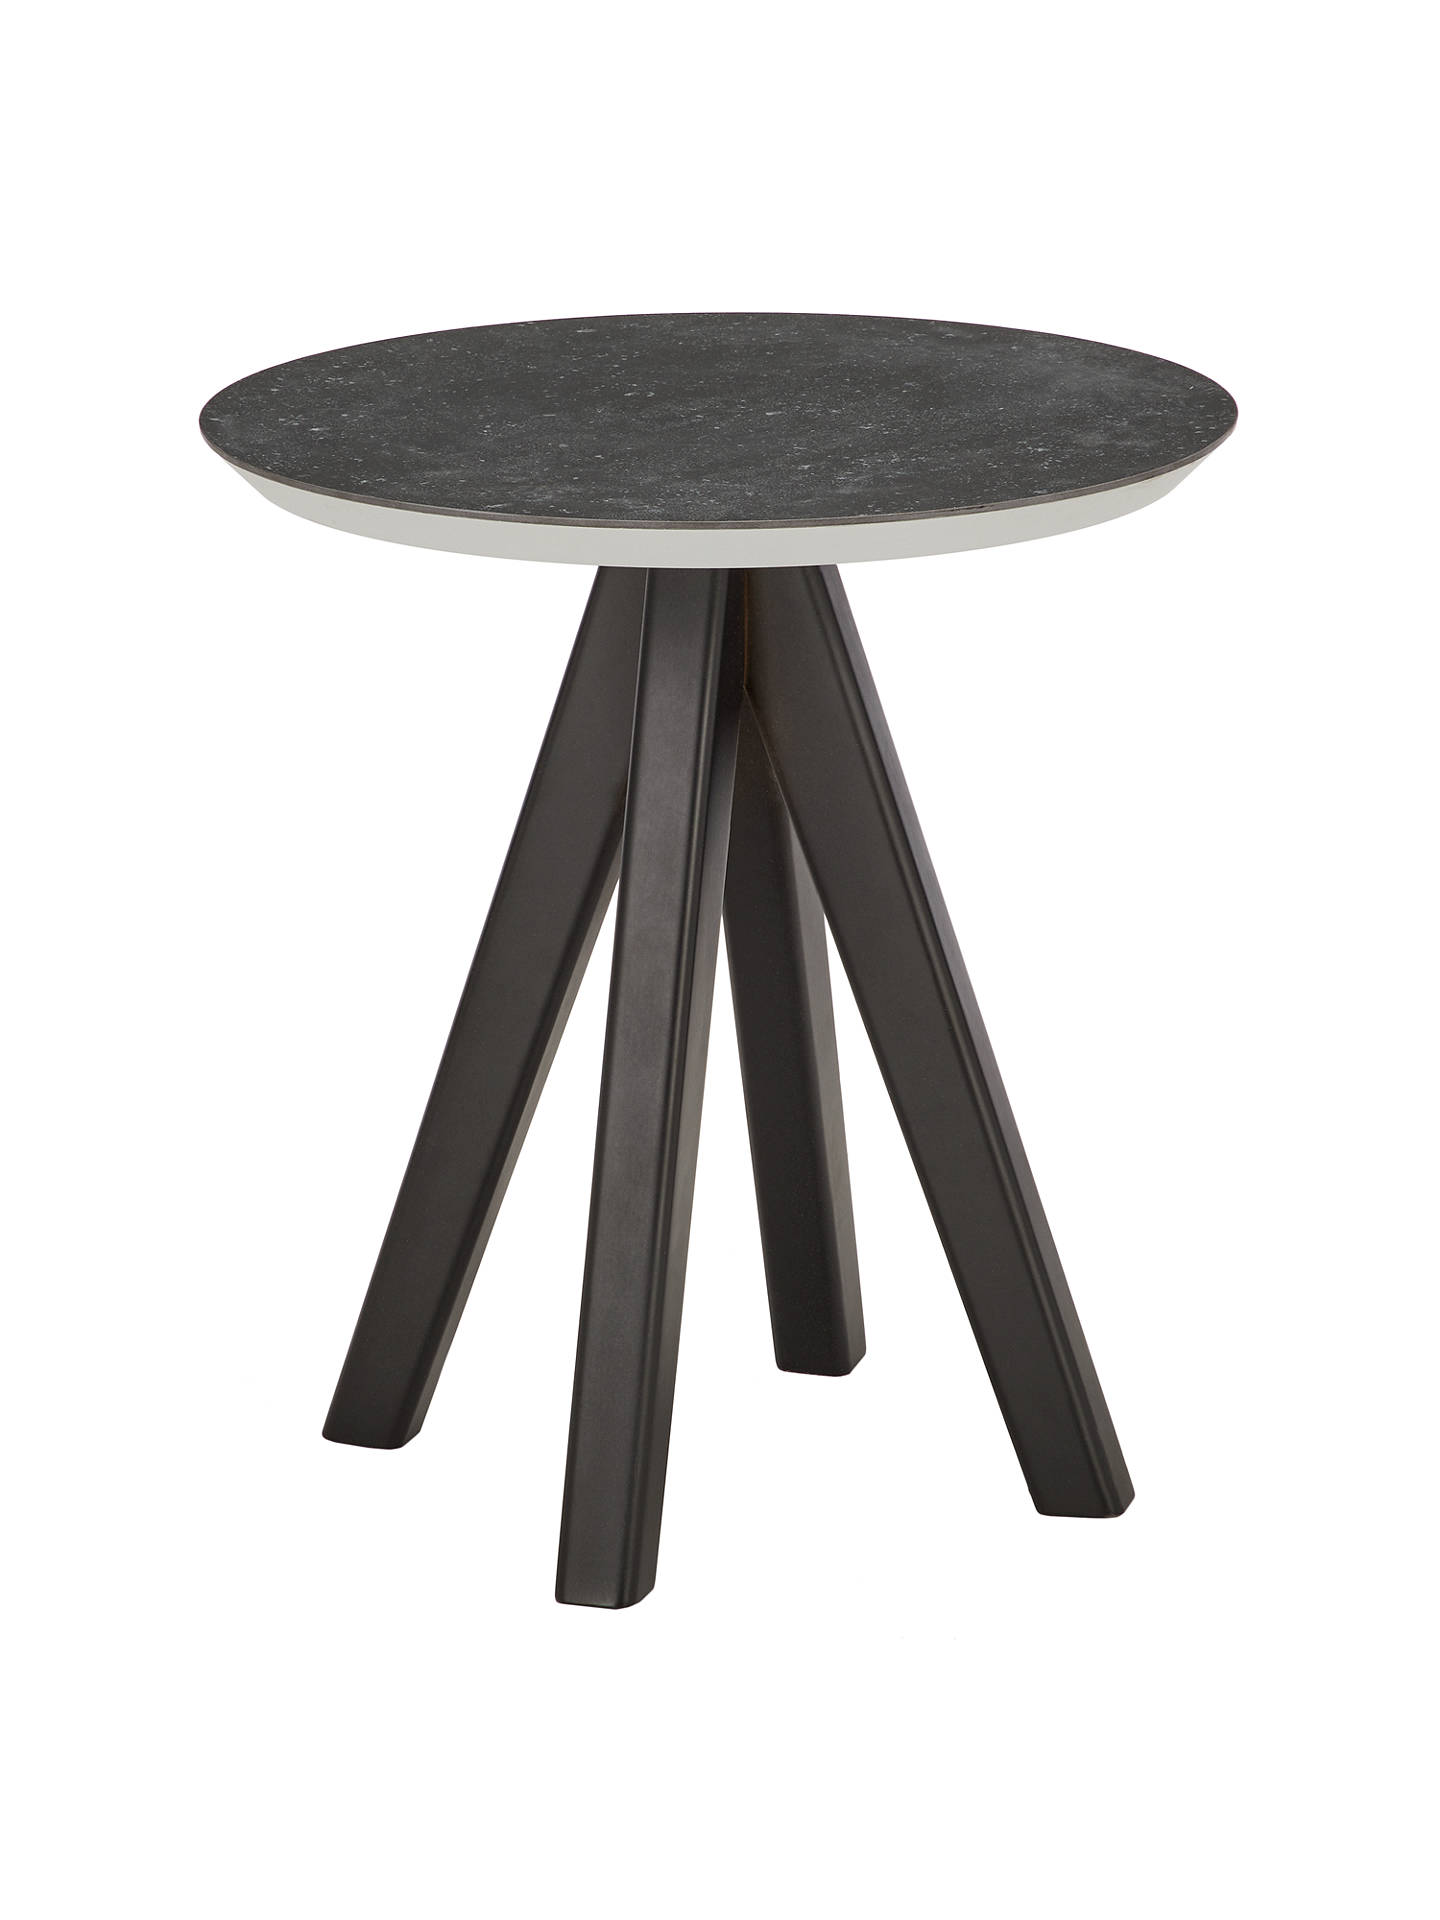 john lewis partners amalfi round side table wood accent black johnlewis marble cube home goods sofa reclaimed furniture unique patio umbrellas homesense chairs contemporary legs